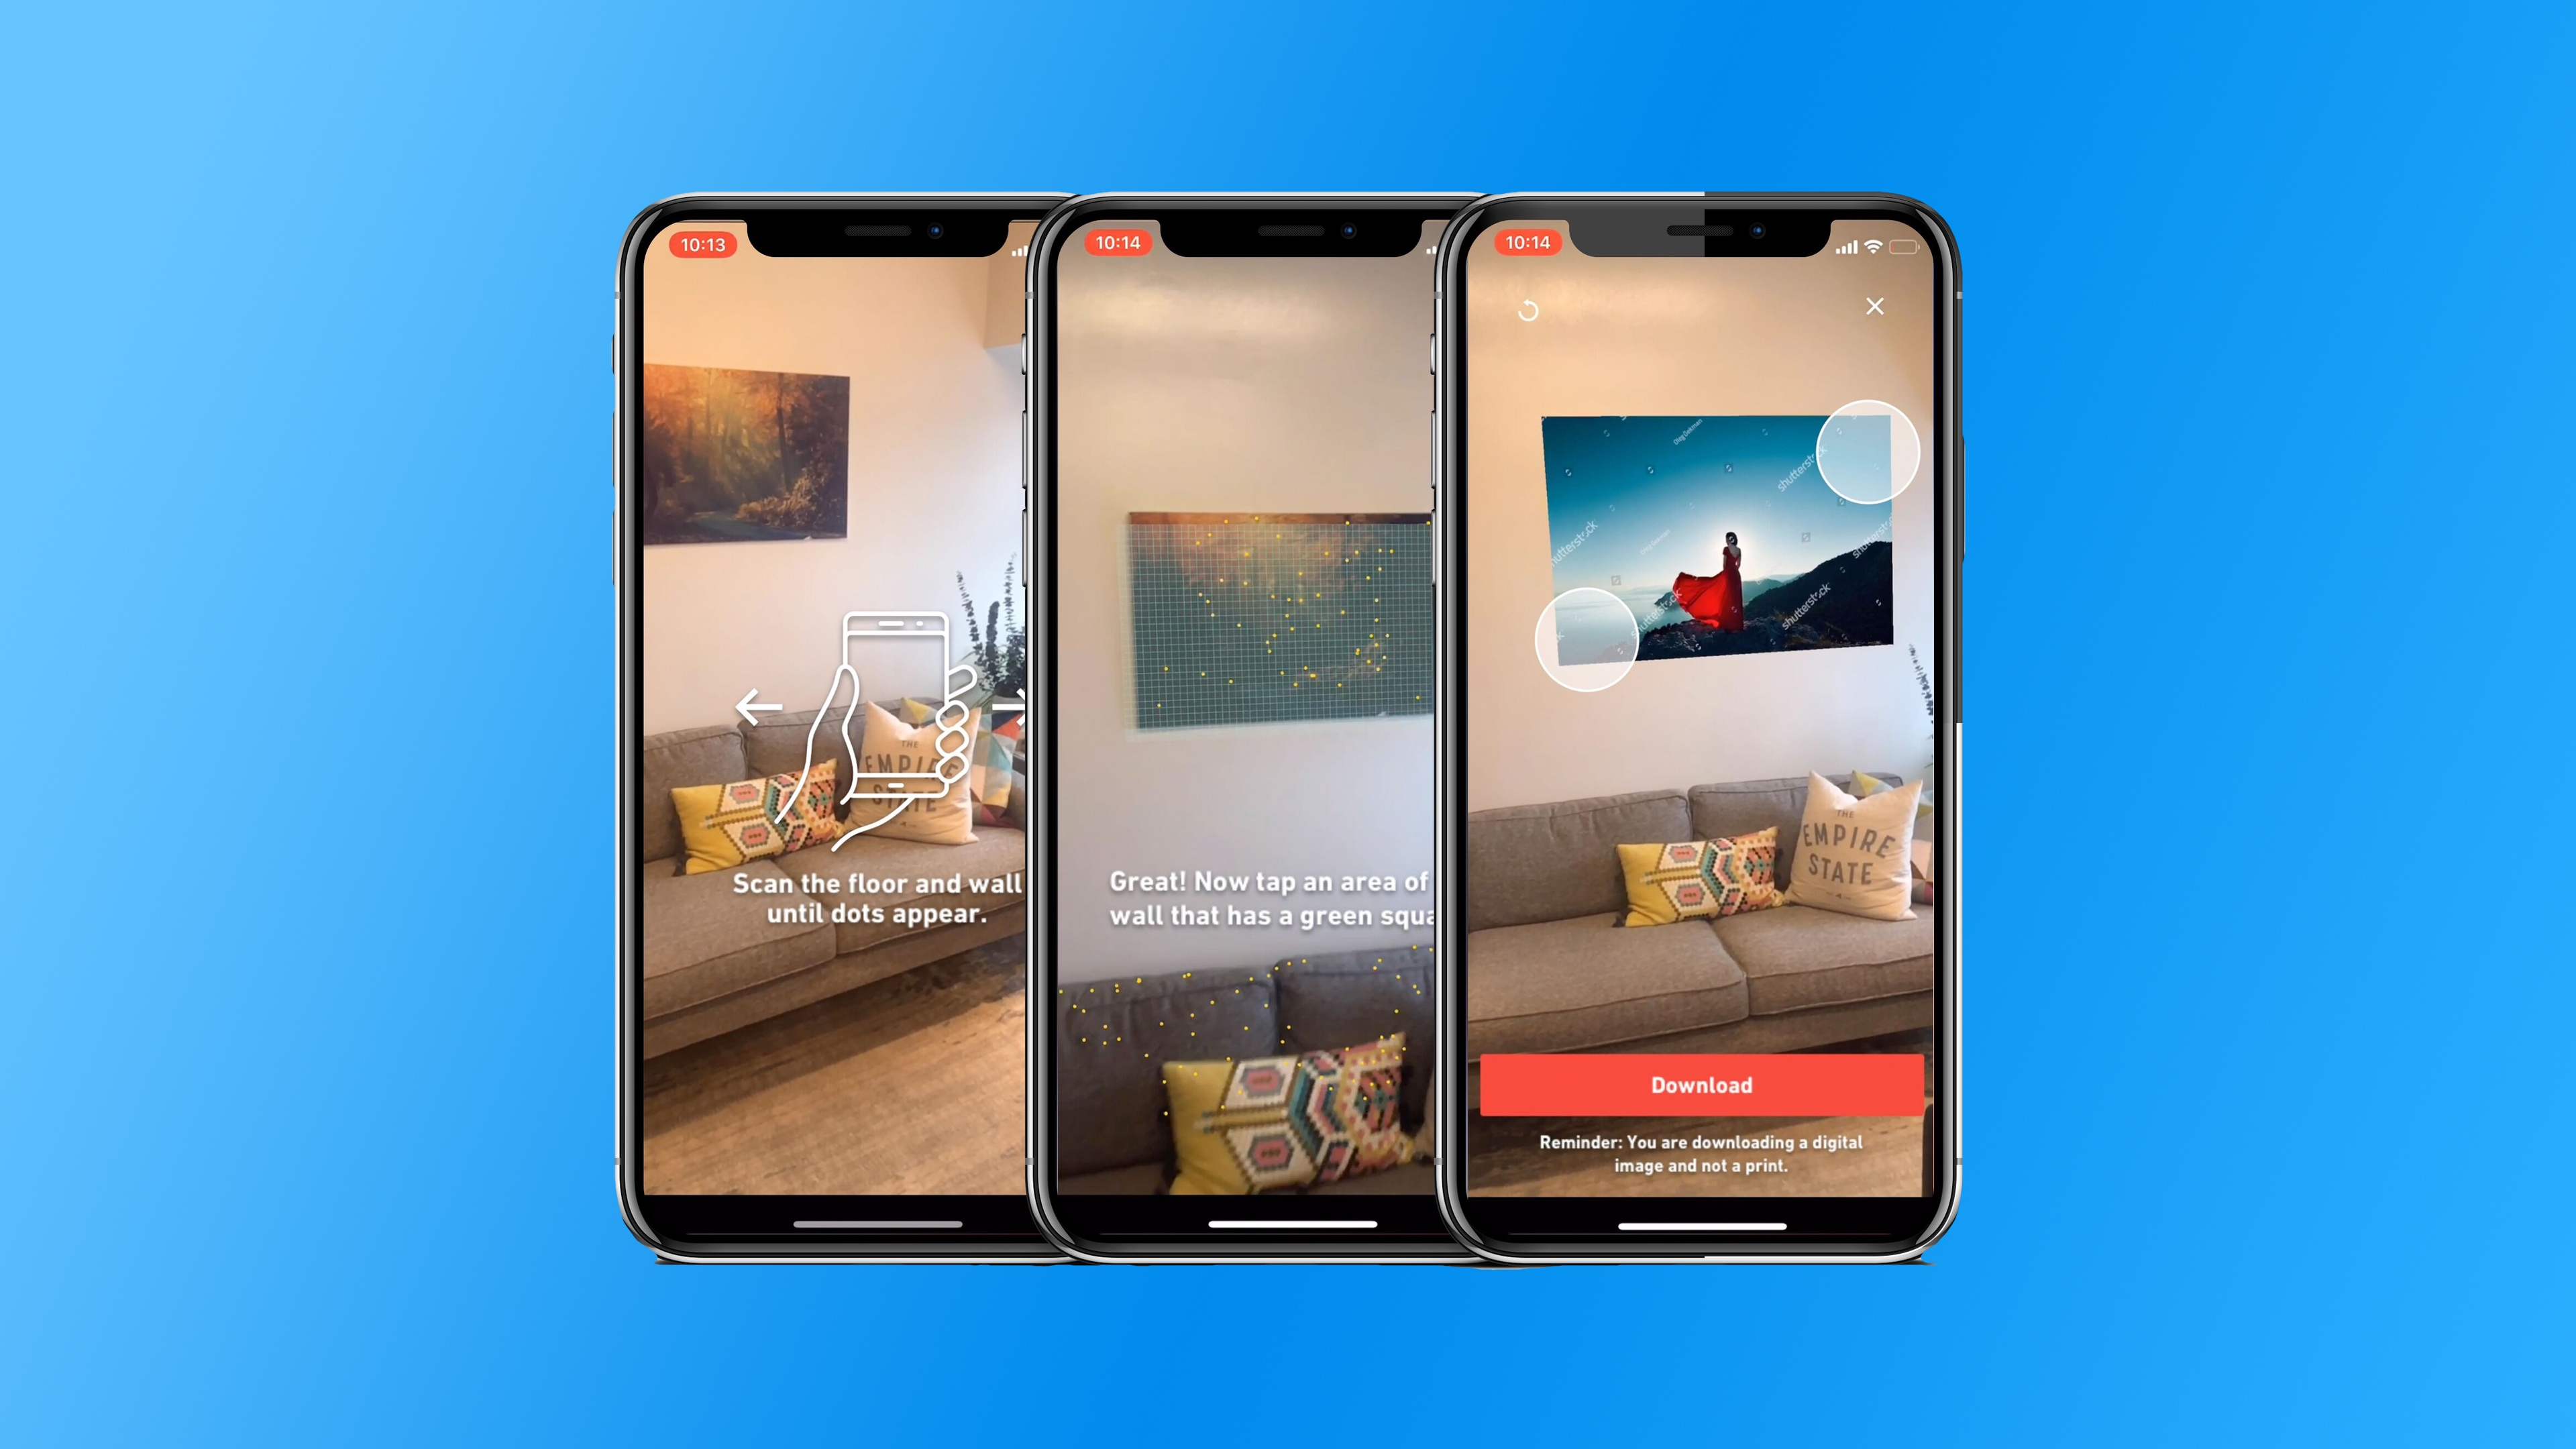 Shutterstock for iOS adds new 'View in Room' augmented reality feature